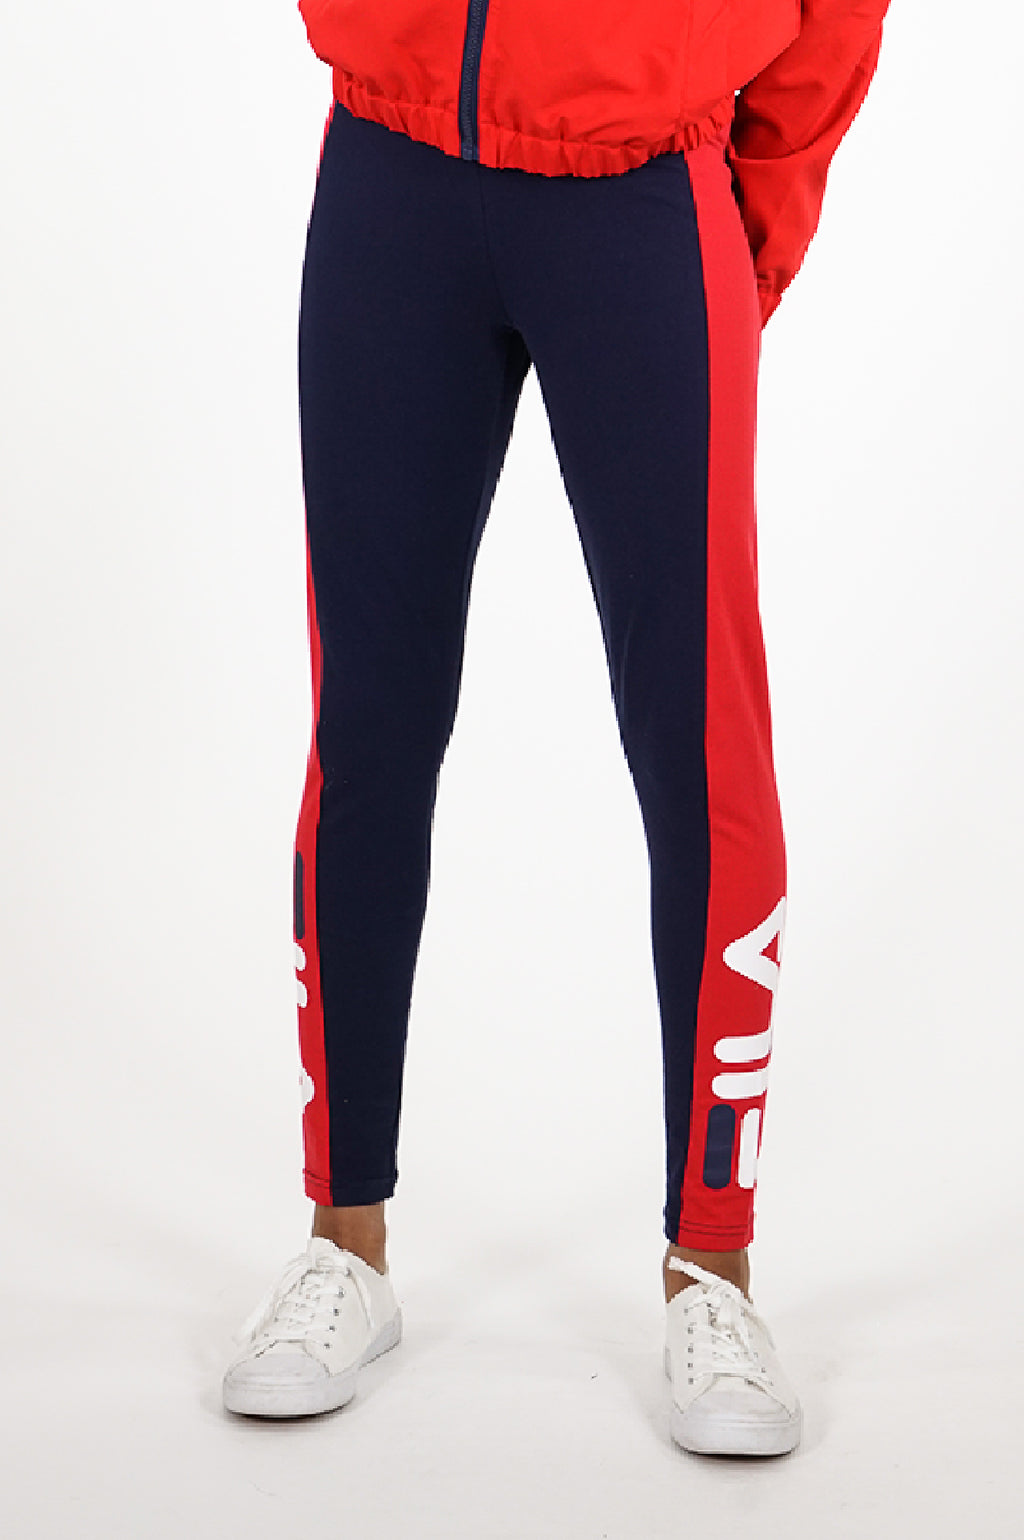 Fila Women Macarena High Waist Legging